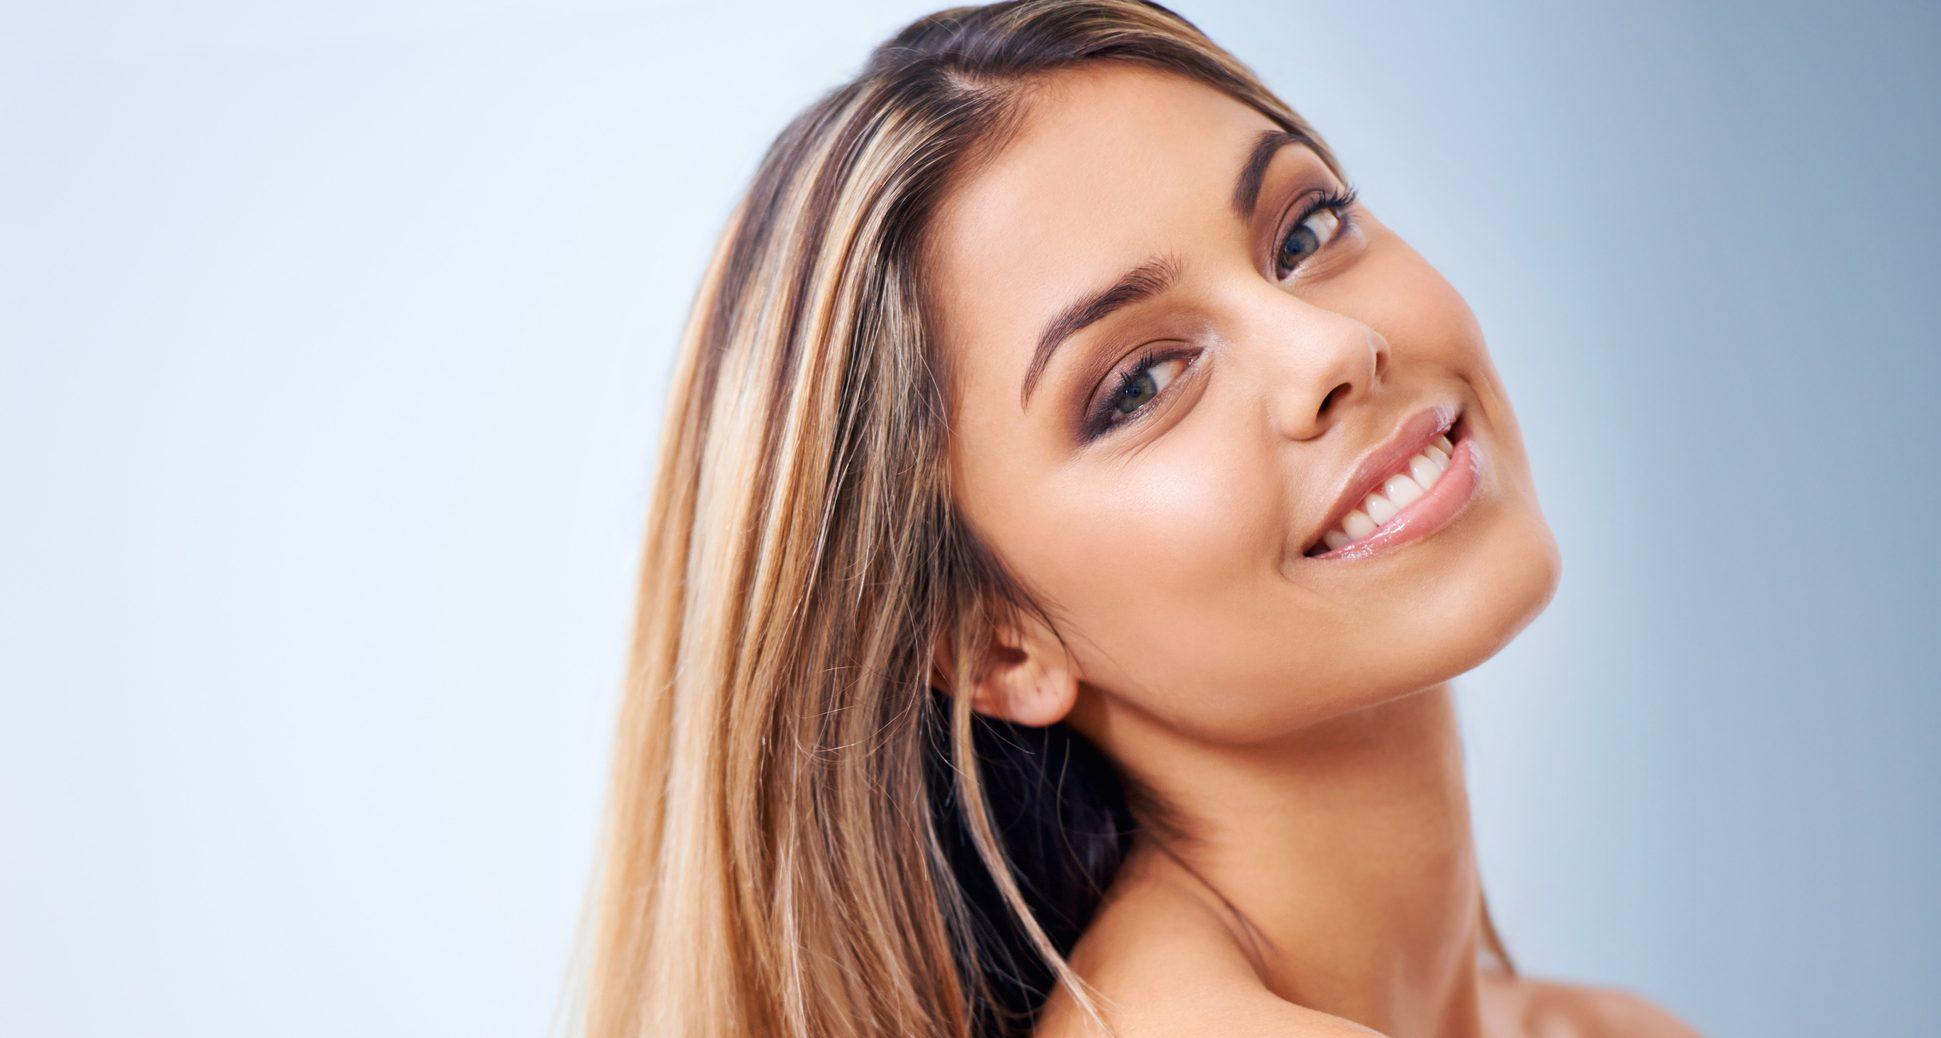 Balayage Appointments: What to Expect at Your Balayage Salon in Denver